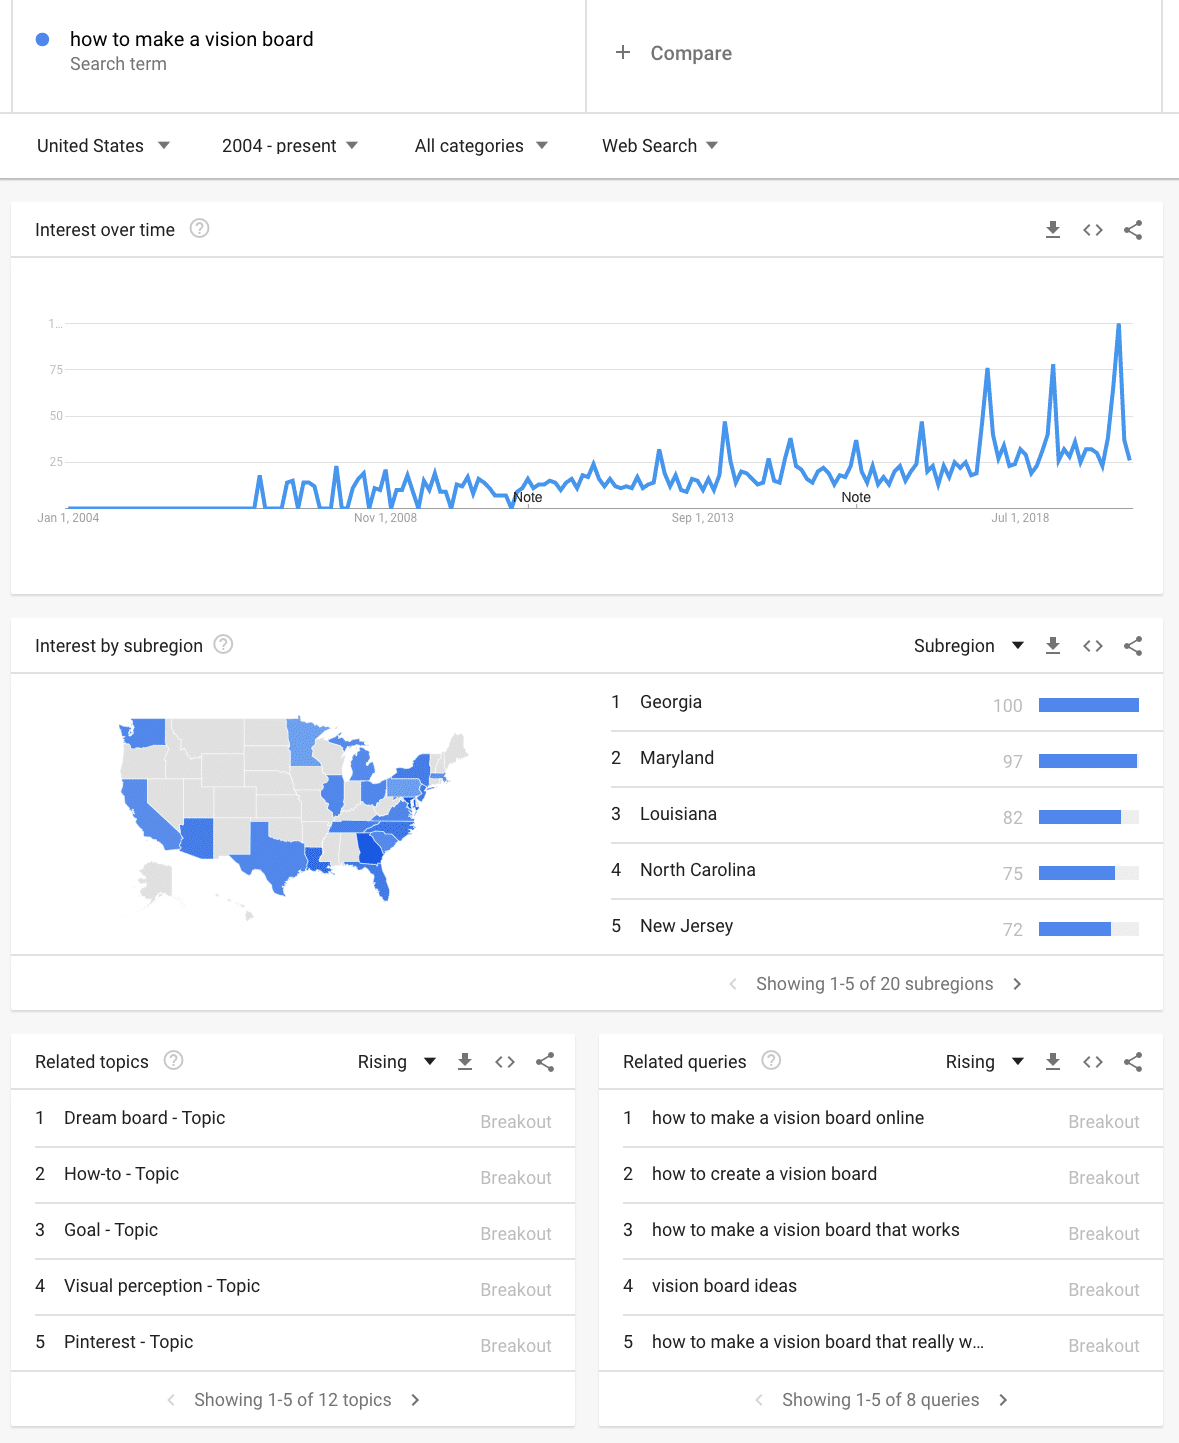 google trends how to make a vision board